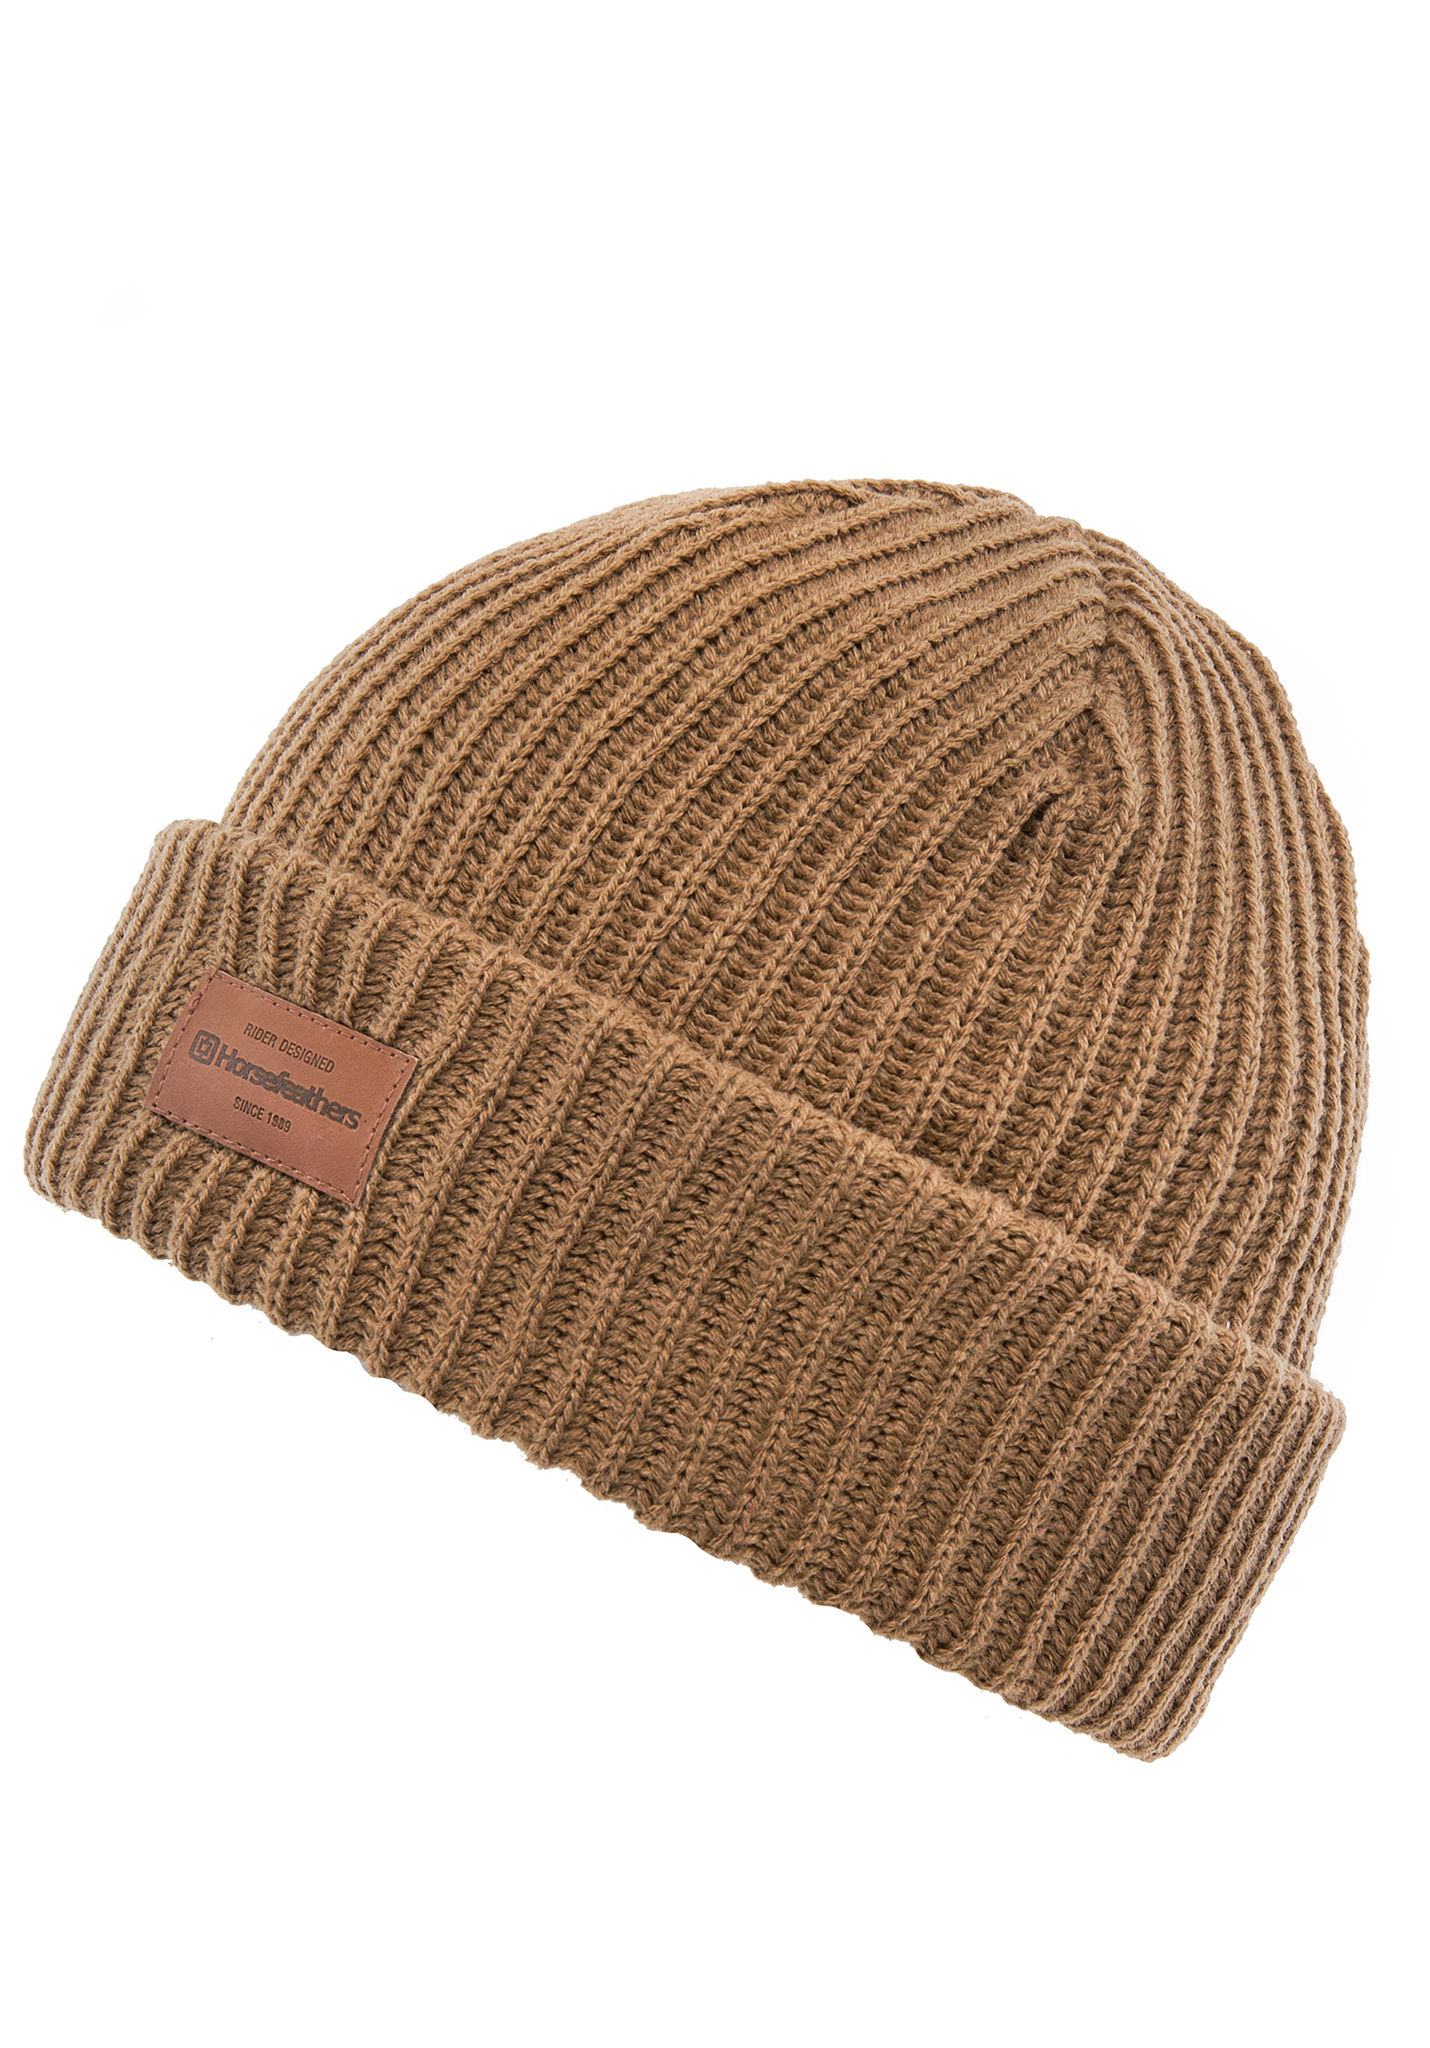 HORSEFEATHERS Thief - Beanie for Men - Beige - Planet Sports bc75de4fdb1